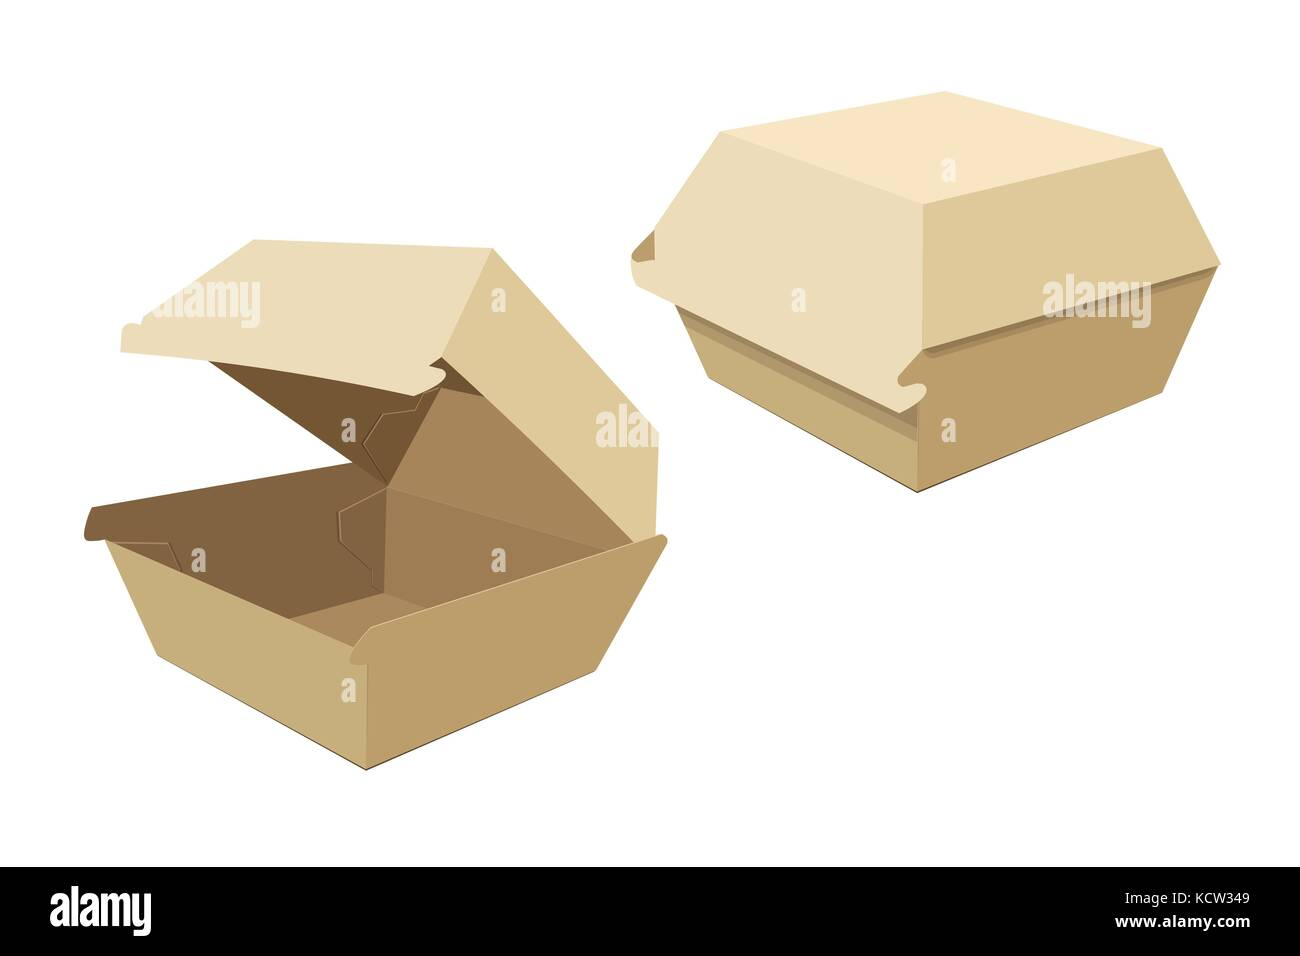 Beige boxes for hamburgers. Storing food delivery. Vector illustration - Stock Image